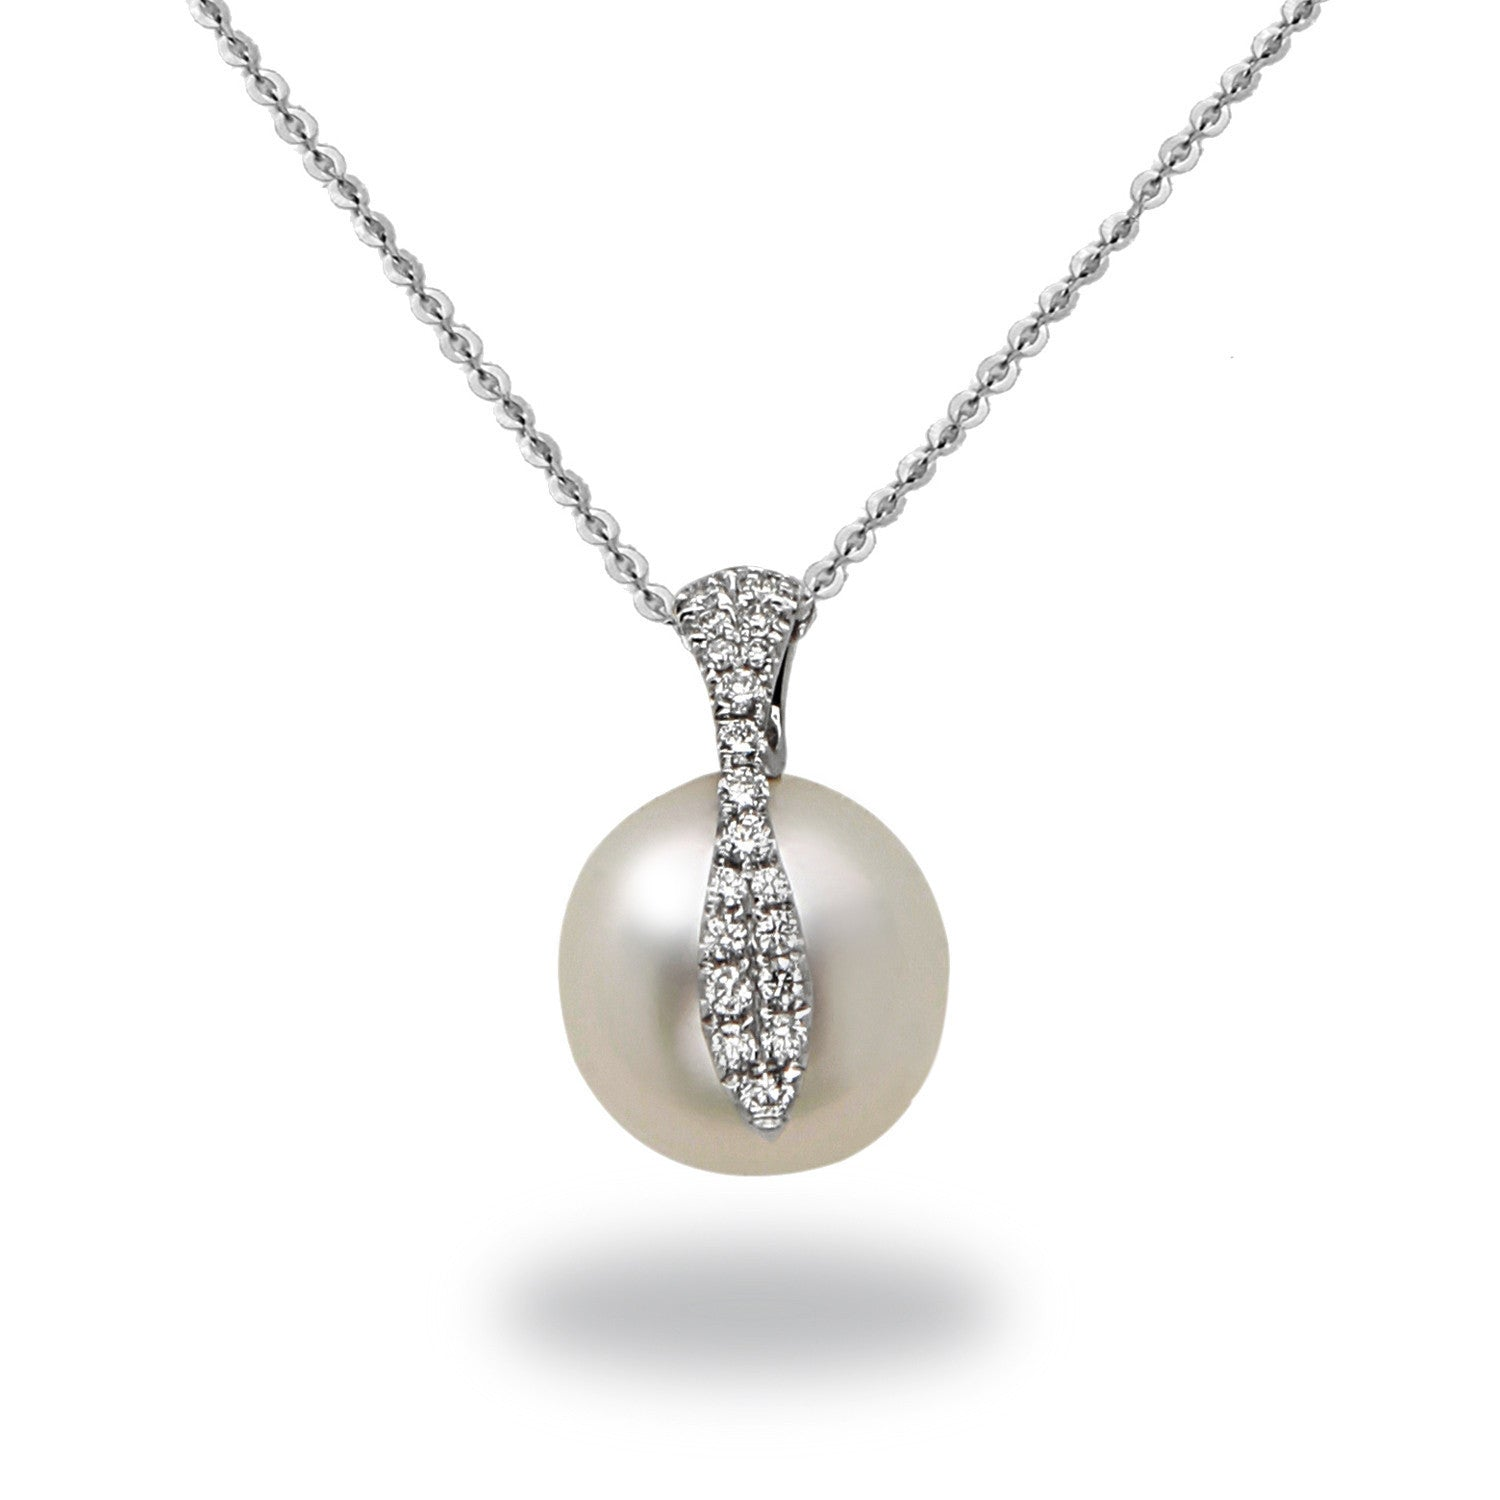 Galaxy Collection 12-13mm Collection White South Sea Pearl and Diamond Pendant Necklace